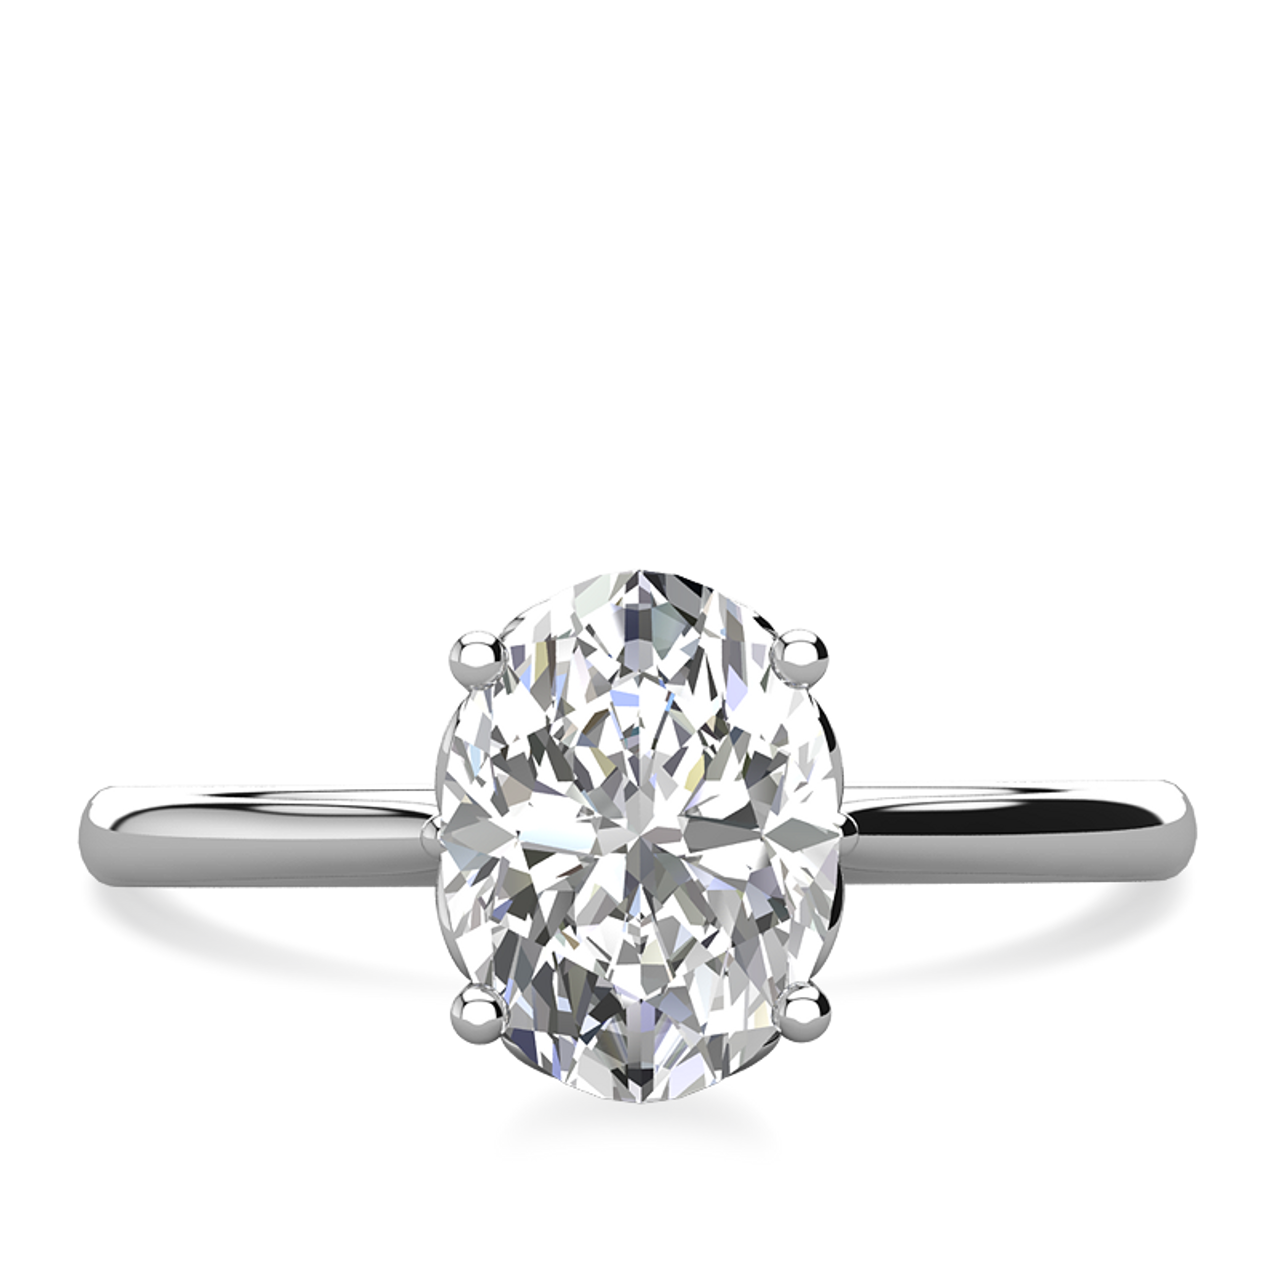 ee621a5e36d84 Lily Oval Cut Engagement Ring